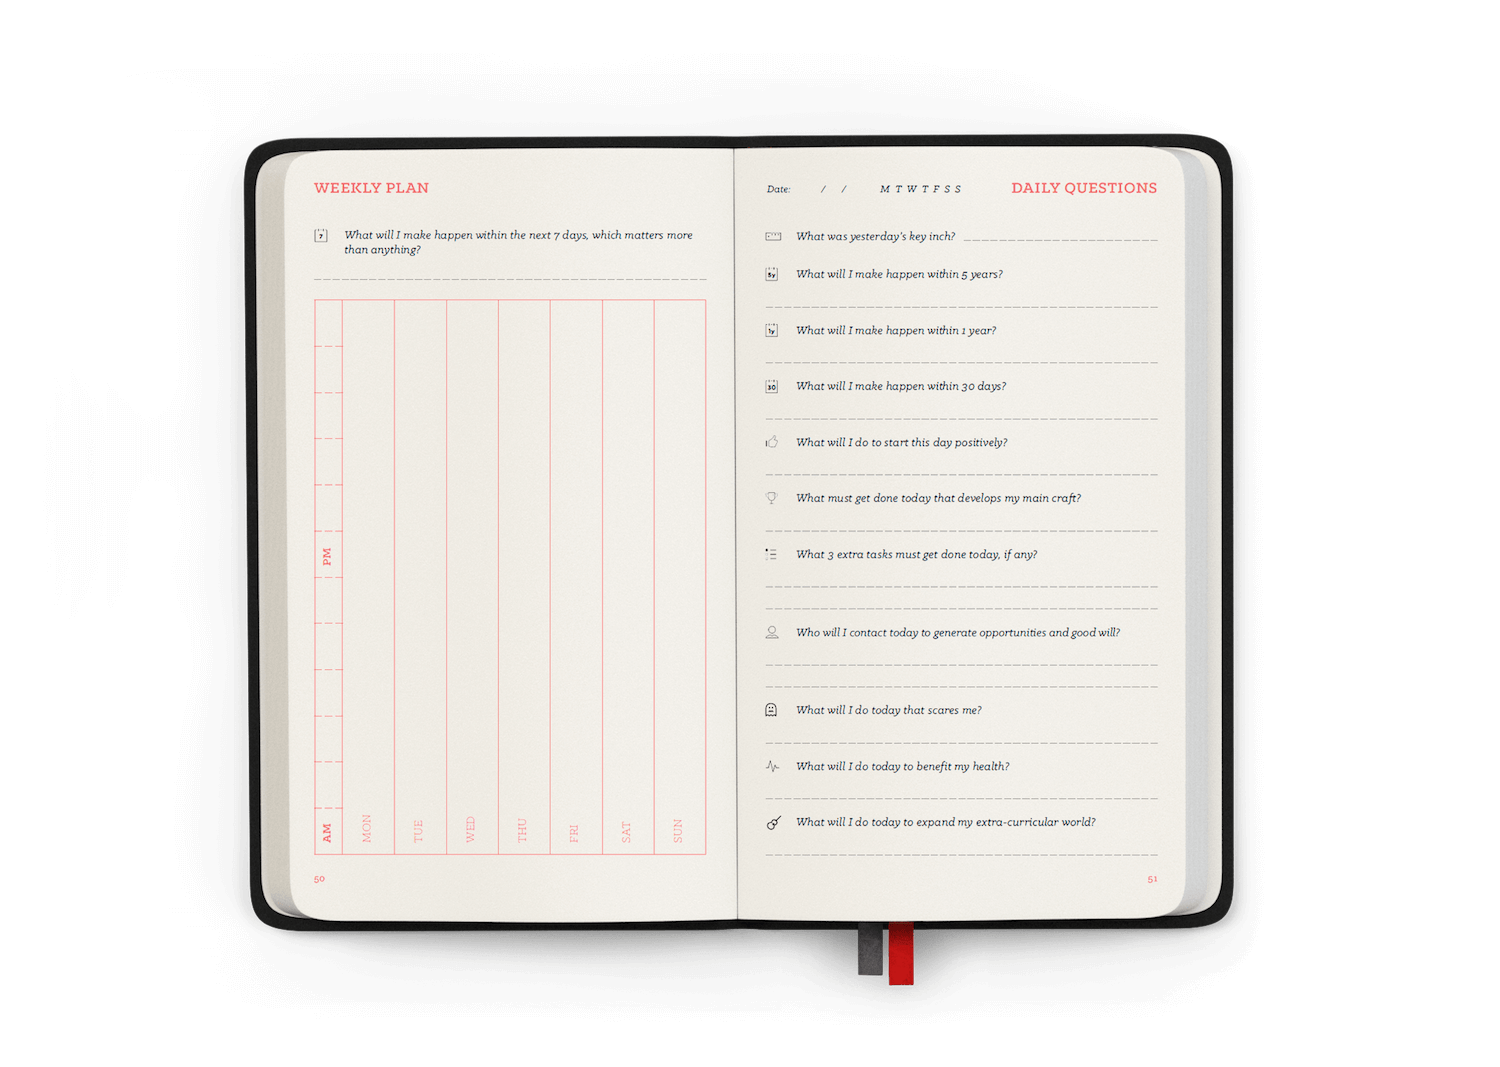 Book of Lift — The weekly plan